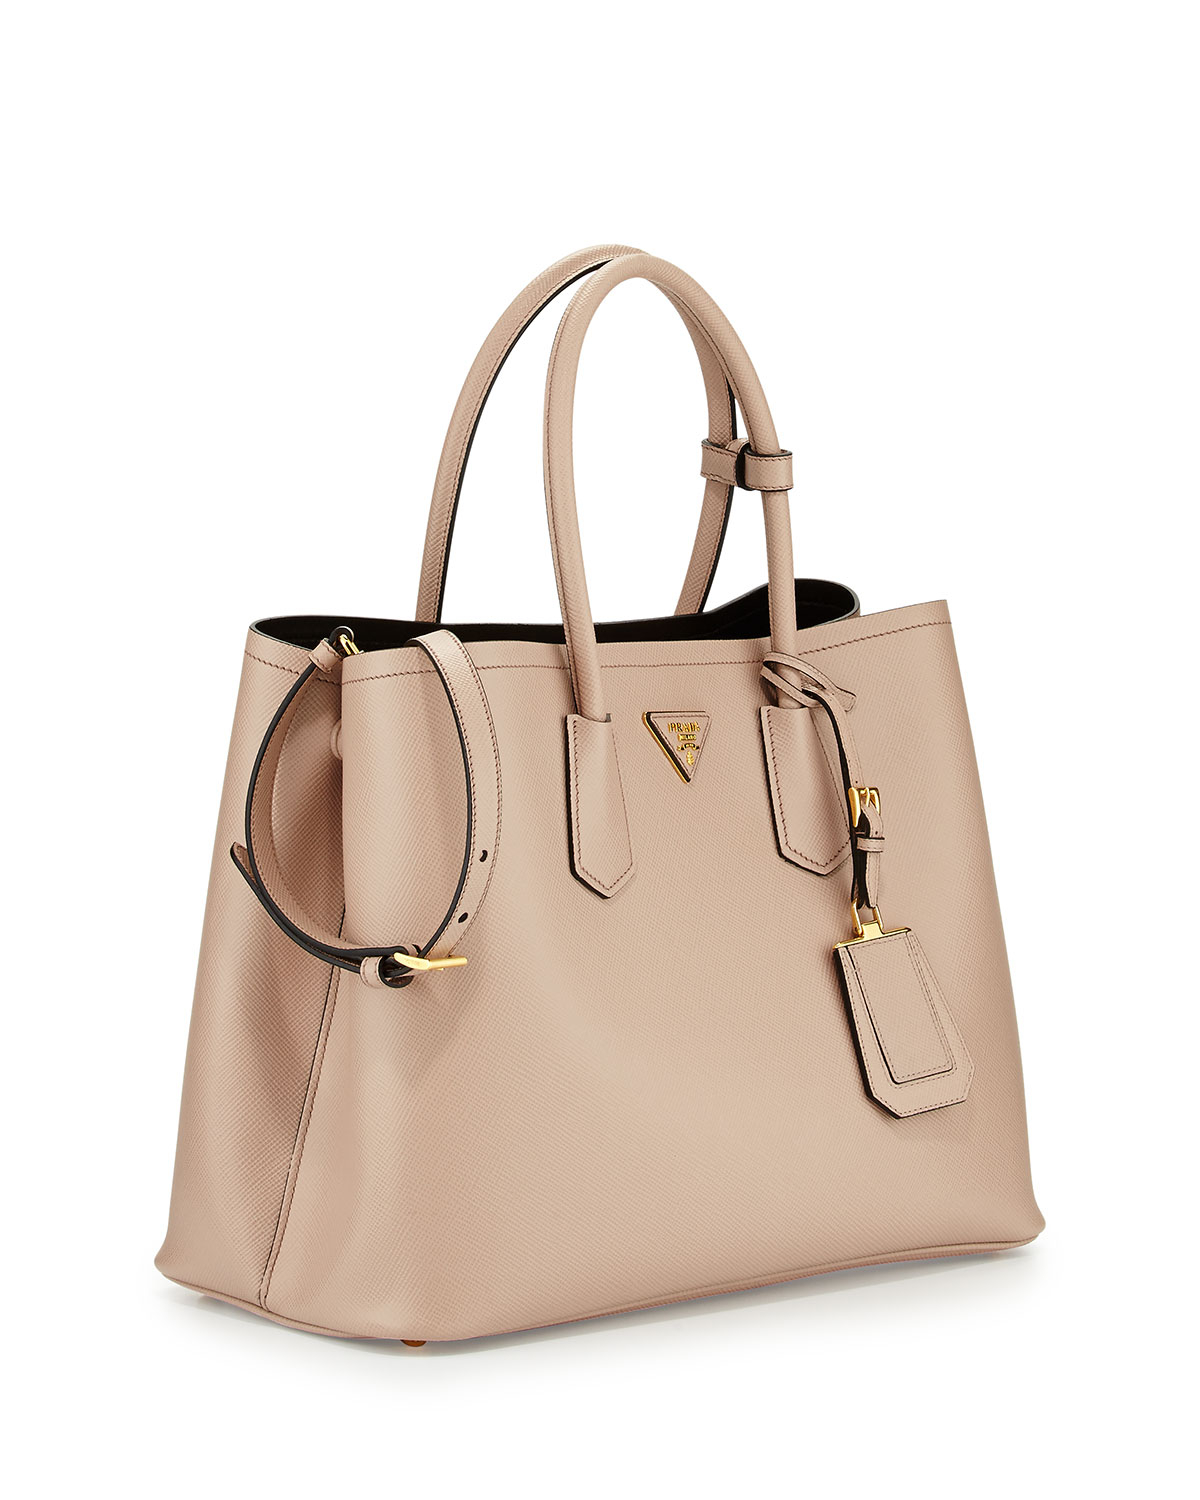 authentic prada handbags usa - Prada Saffiano Cuir Double Bag in Beige (TAN) | Lyst